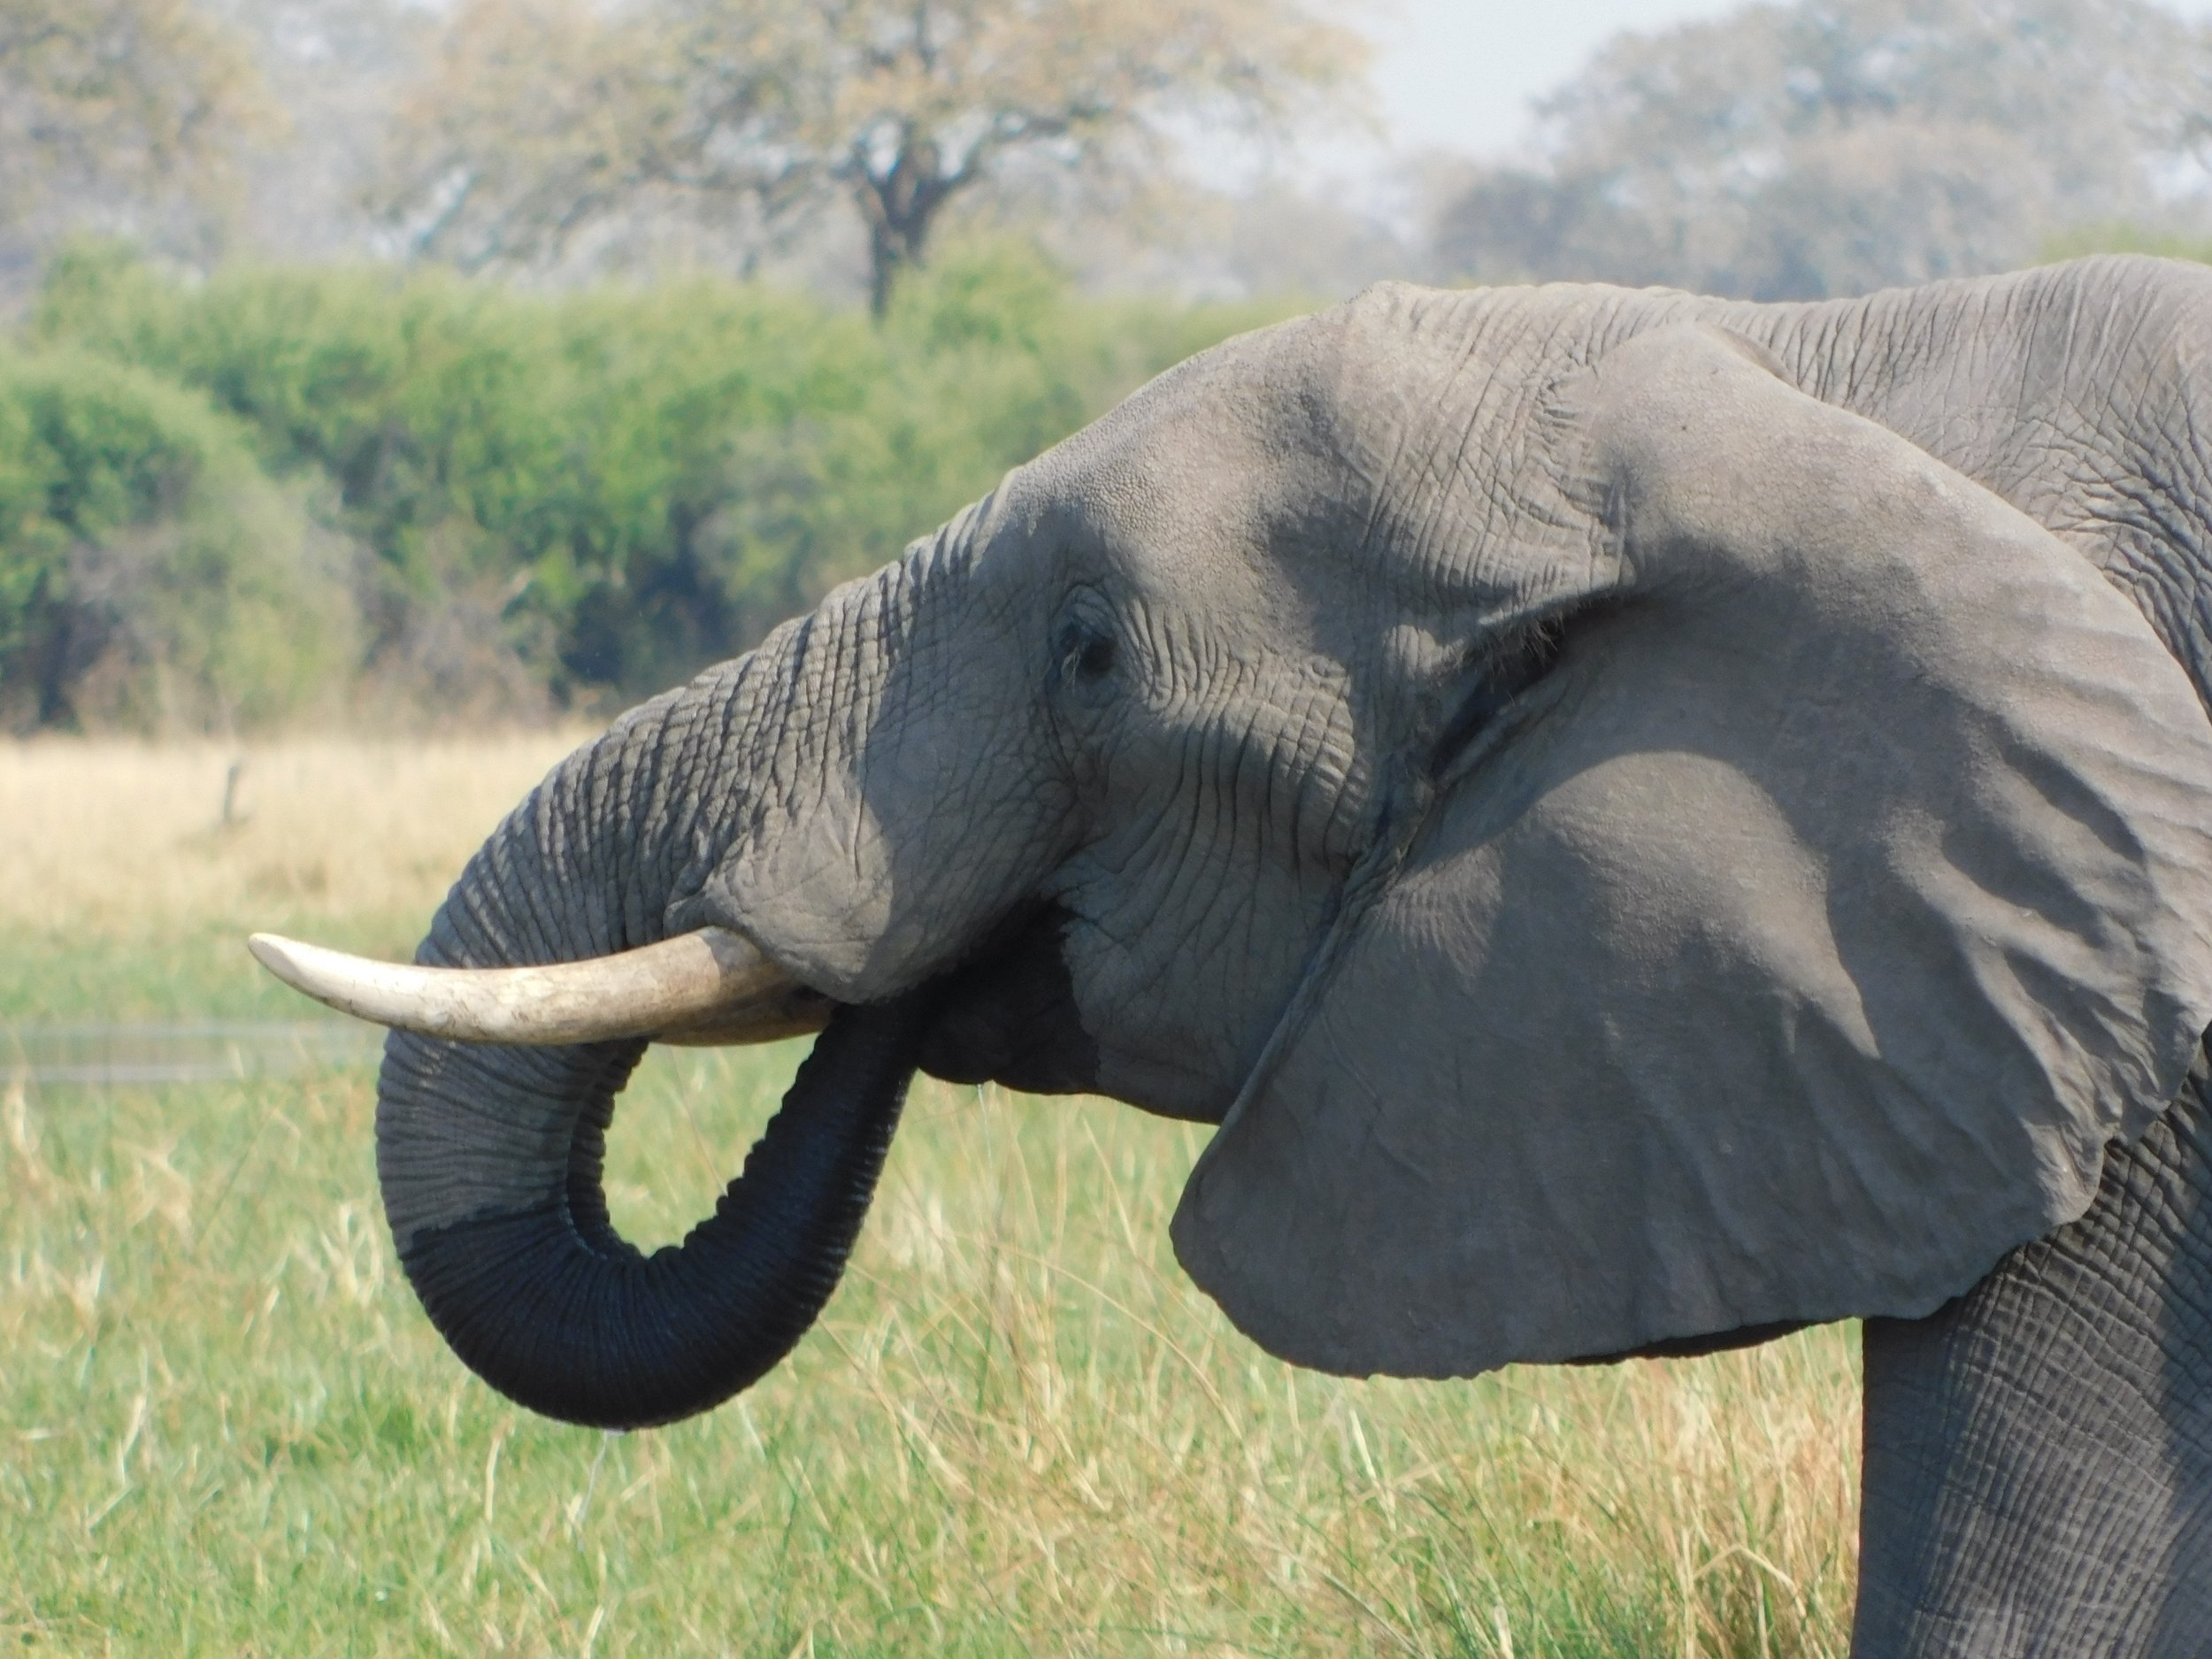 An elephant we found cooling off at a watering hole.